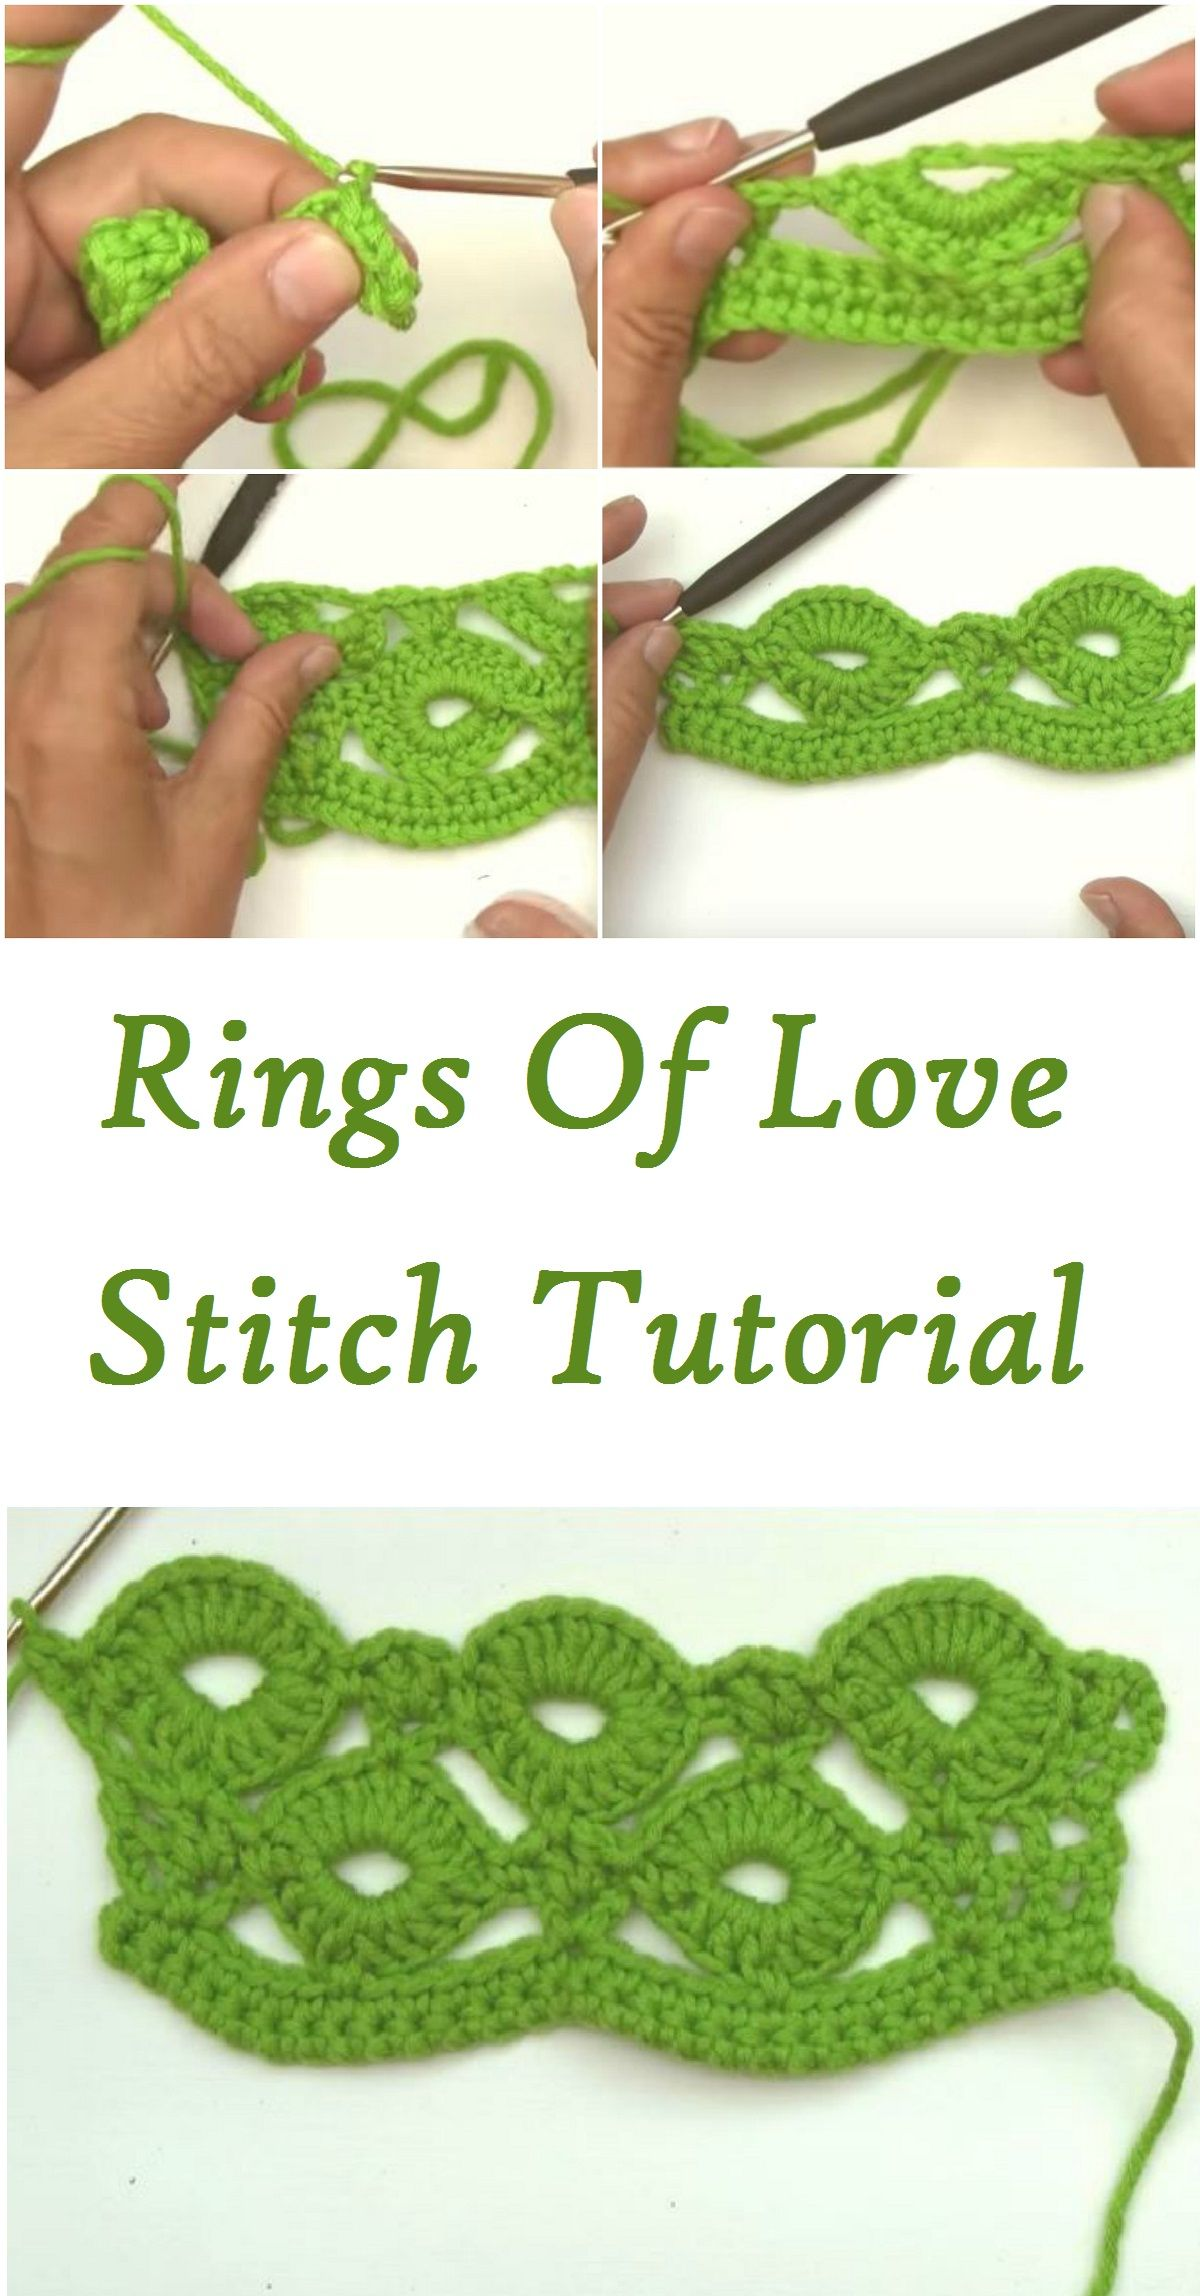 Rings Of Love Stitch Free Tutorials Very useful Stitch Perfect For ...